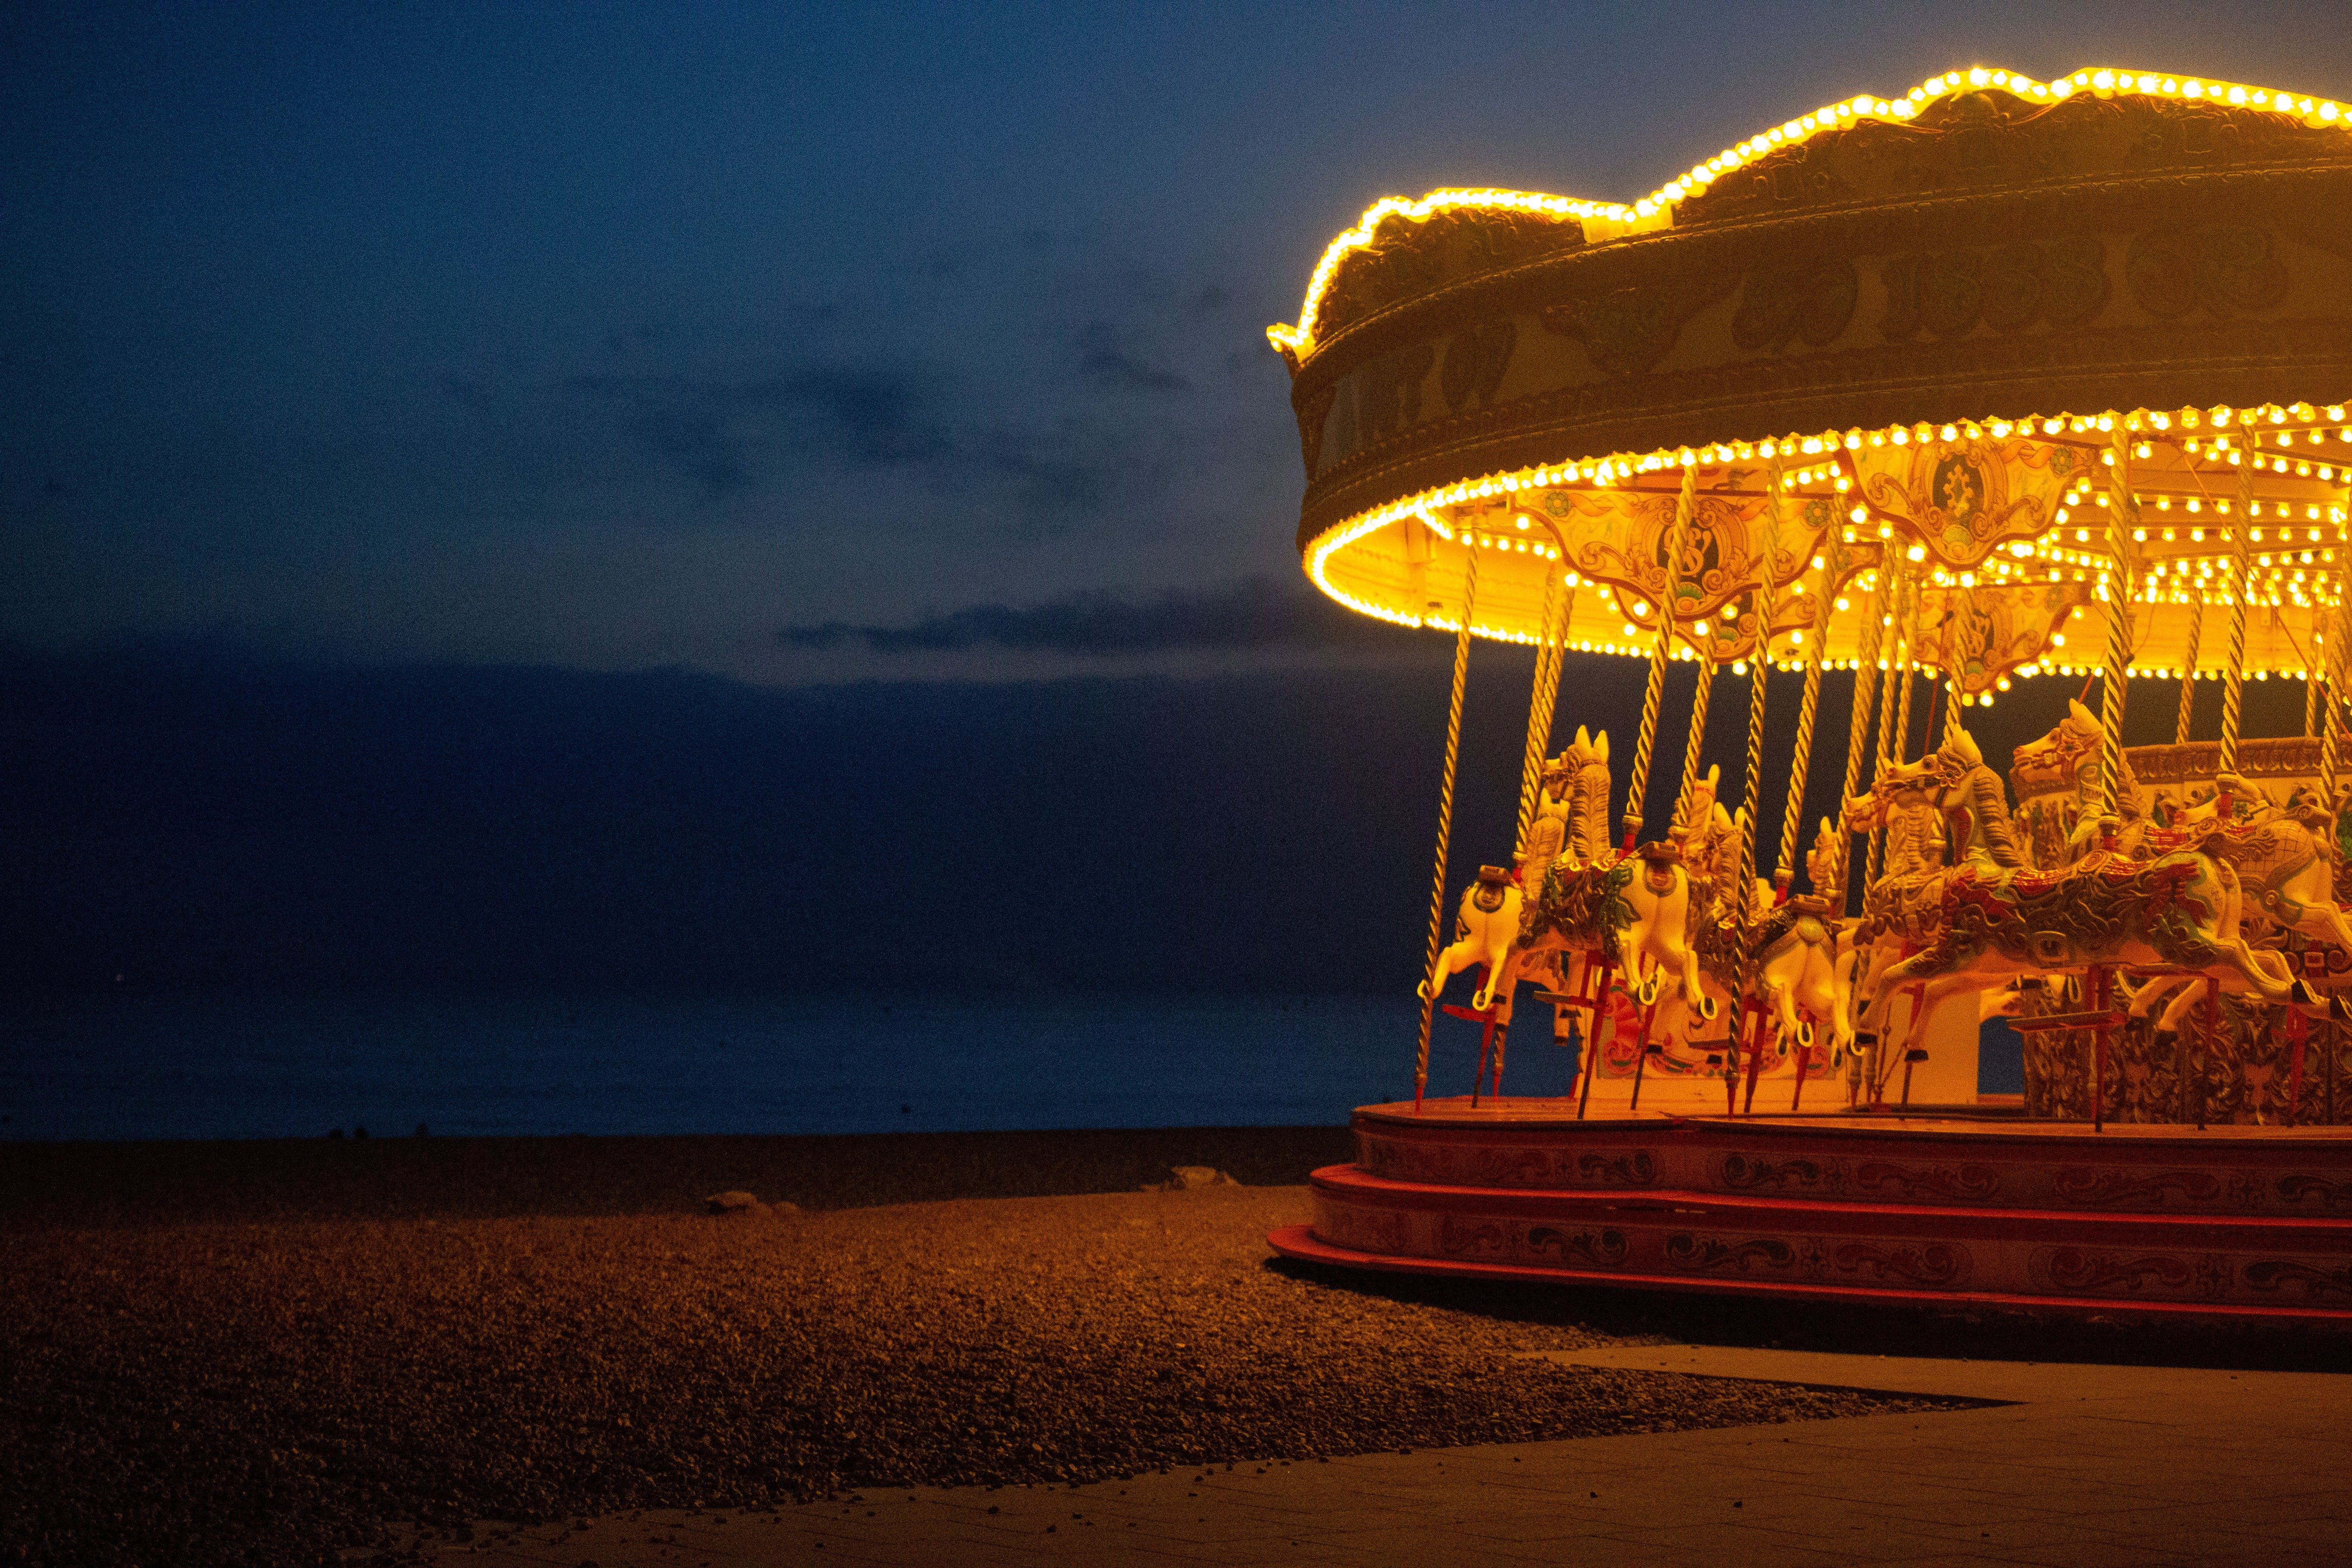 Free stock photo of a carousel with horses on Brighton